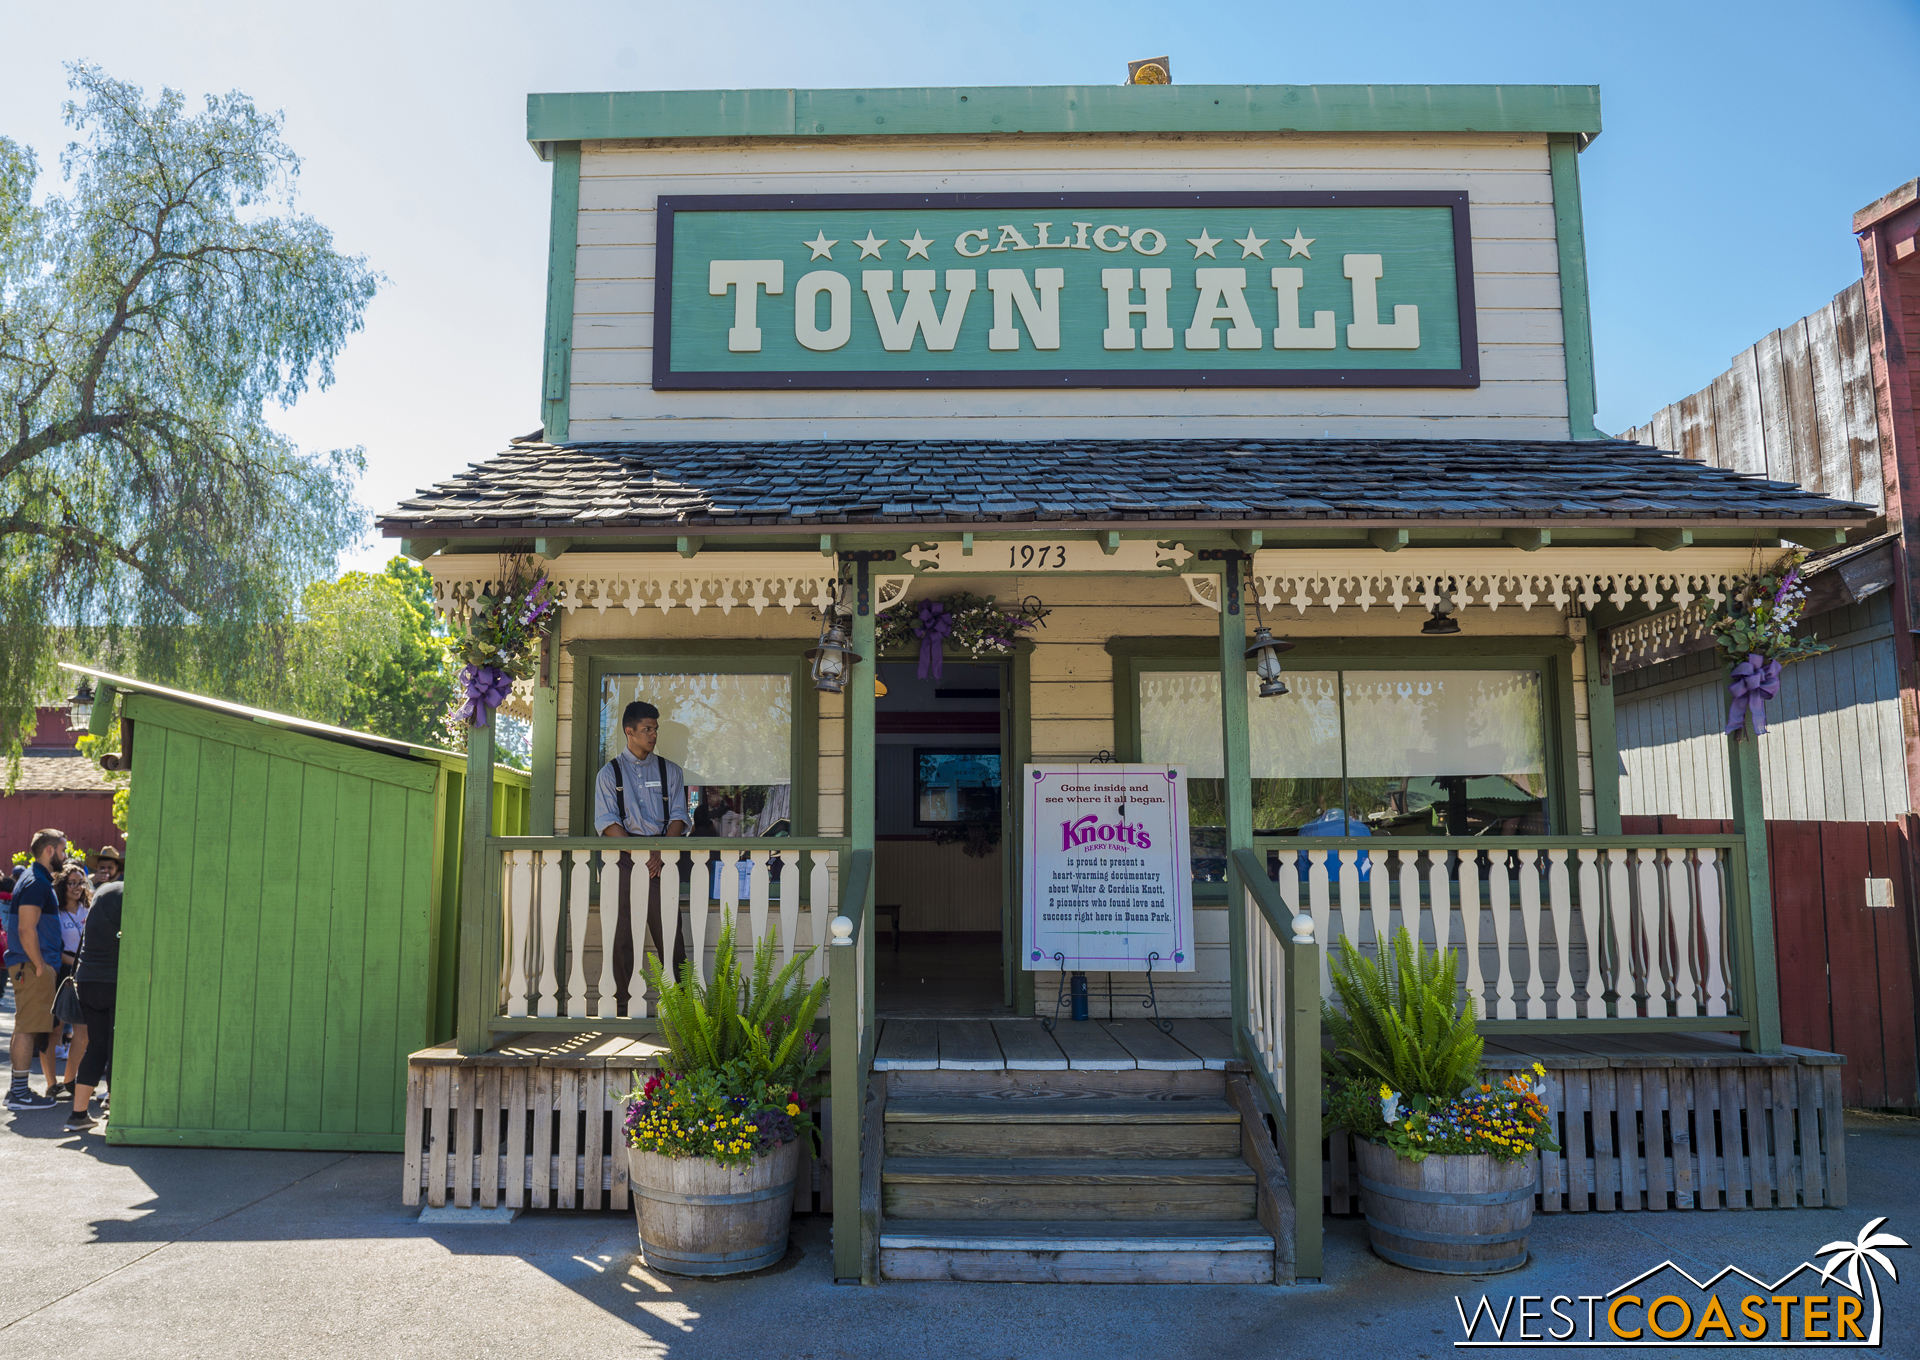 The History of the Boysenberry Presentation plays all day at the Calico Town Hall.